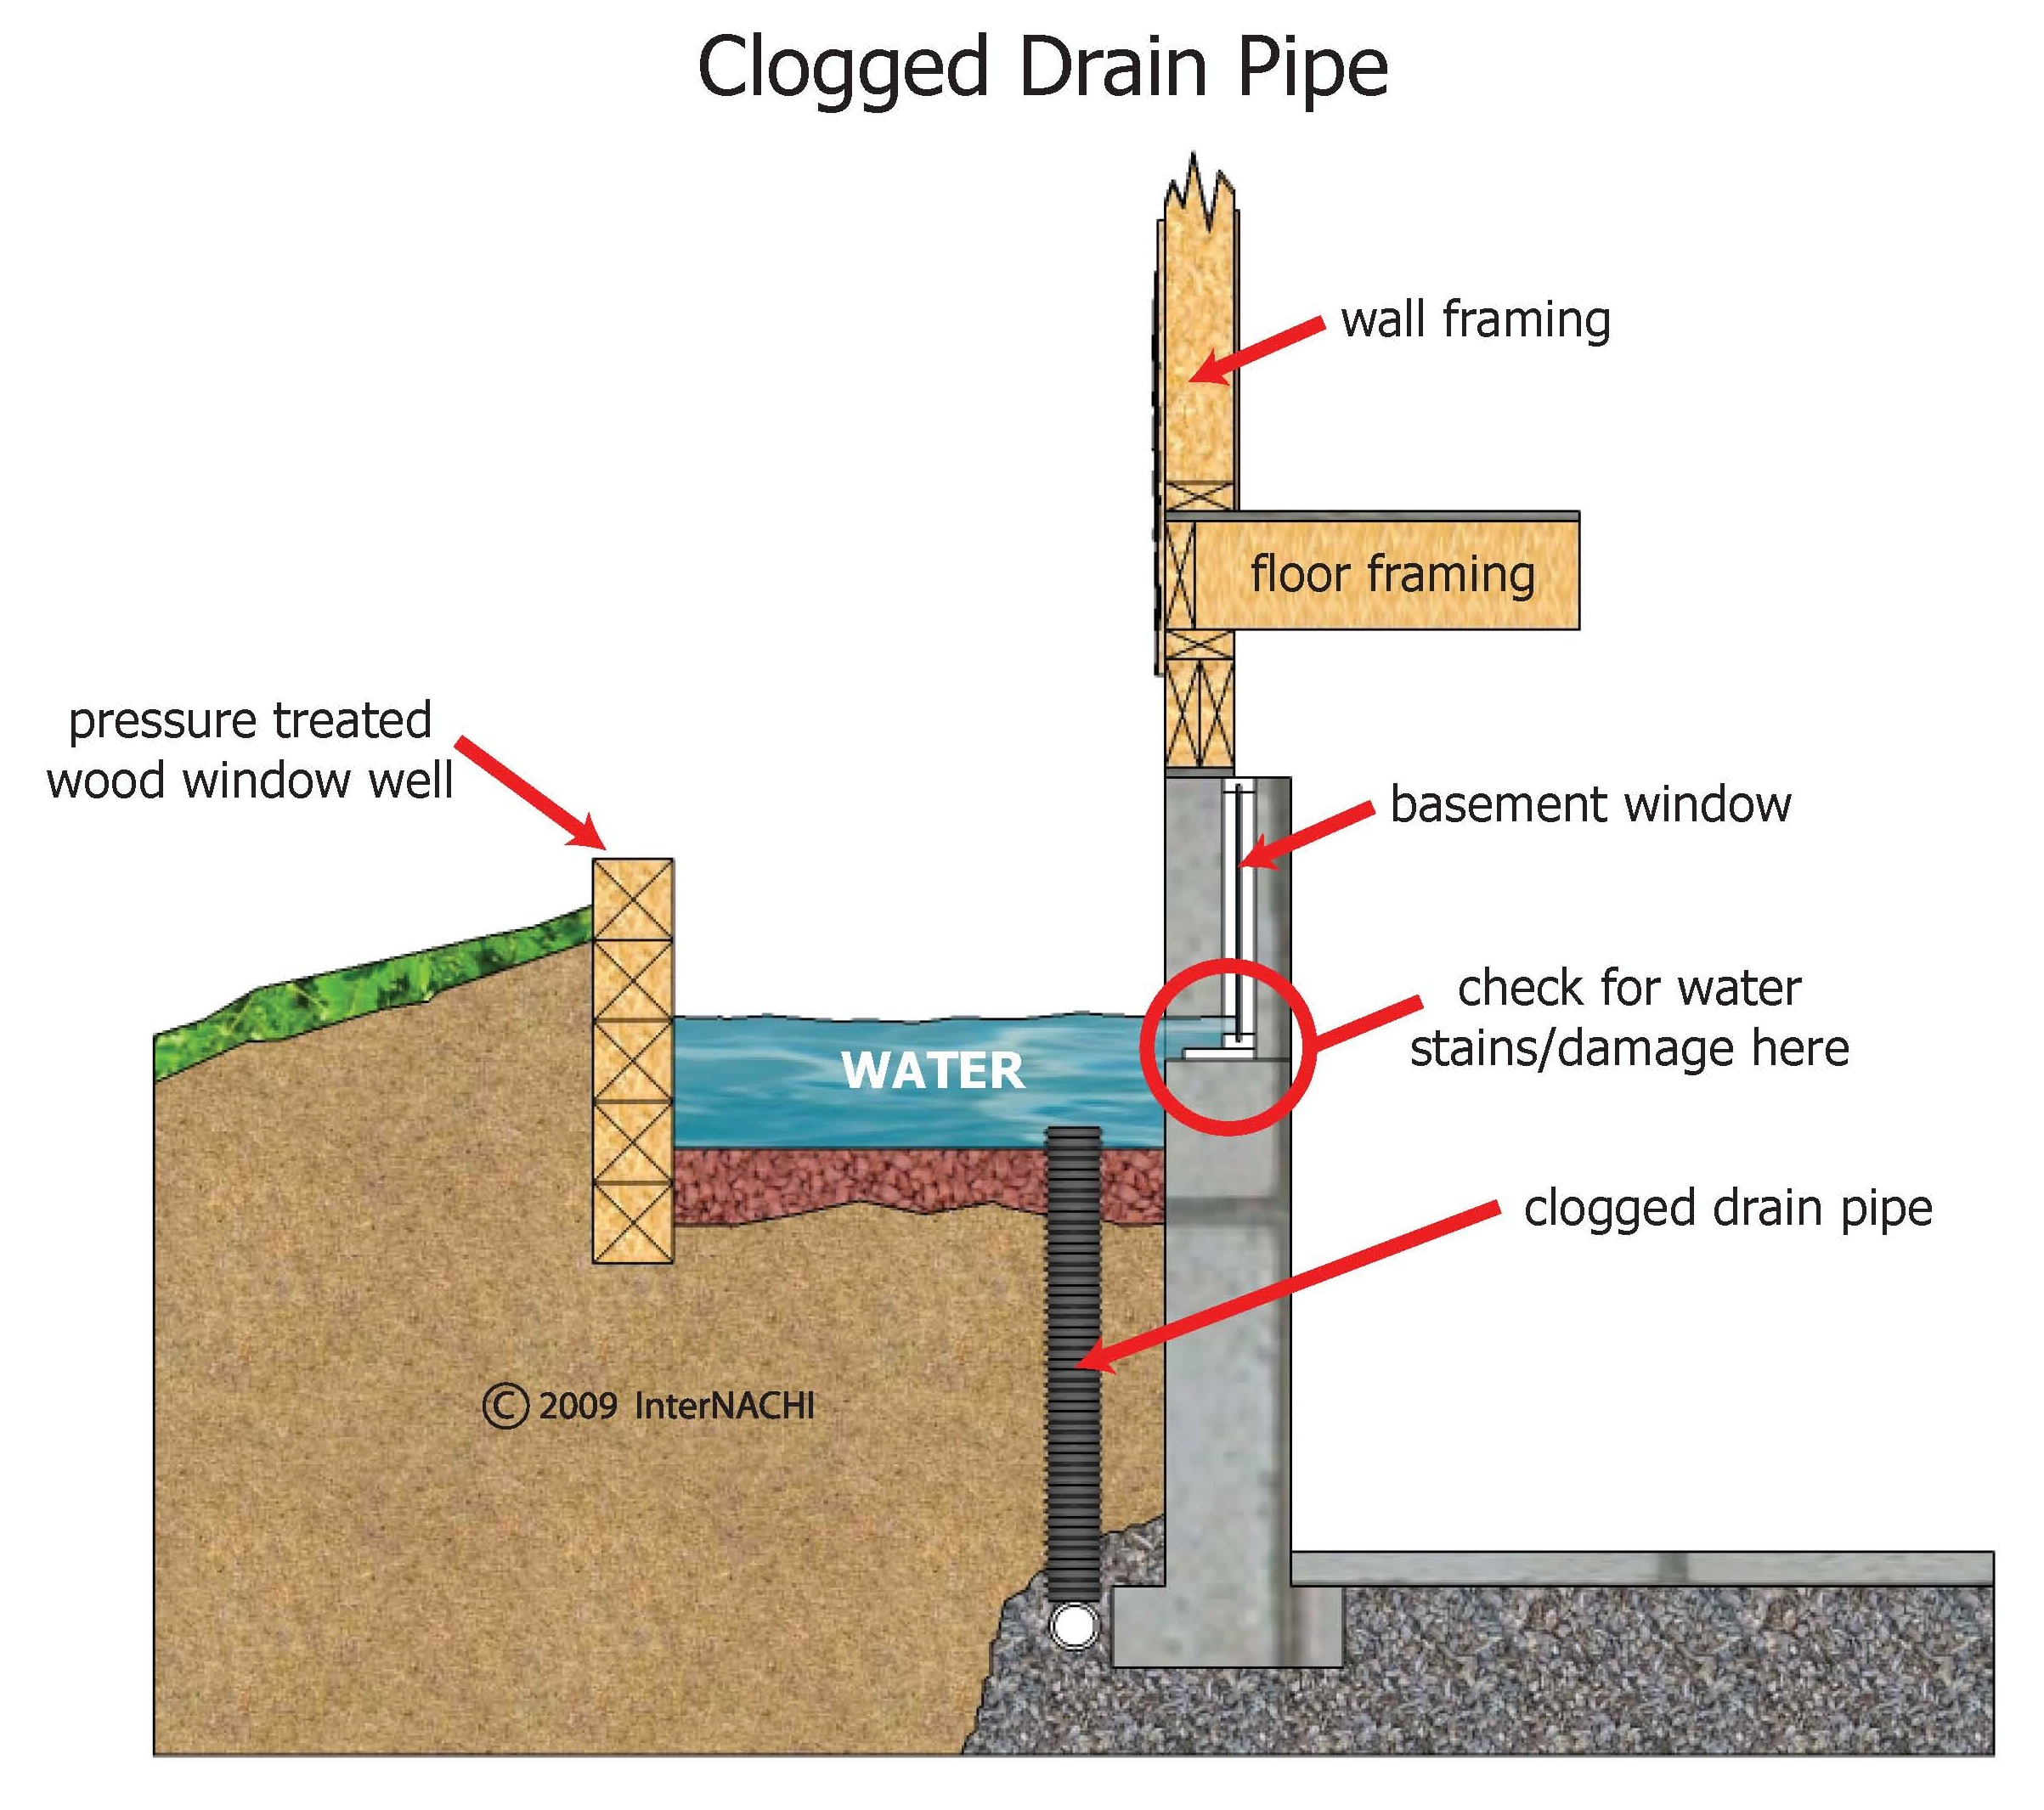 Clogged-drain-window-well-2d